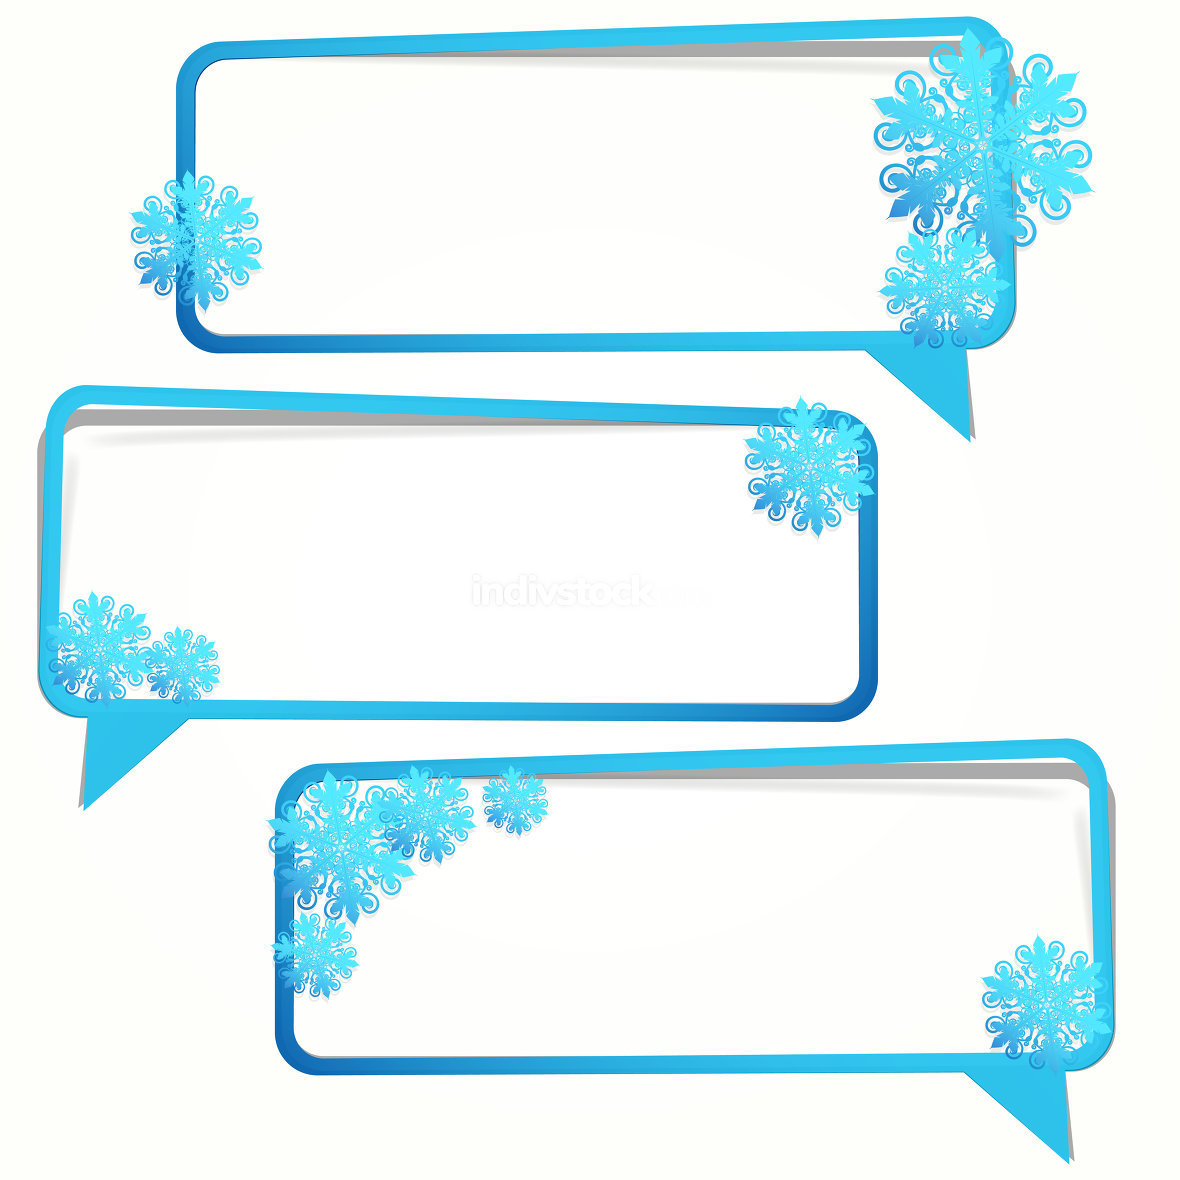 Winter sticker in the form of an empty frame for your text.